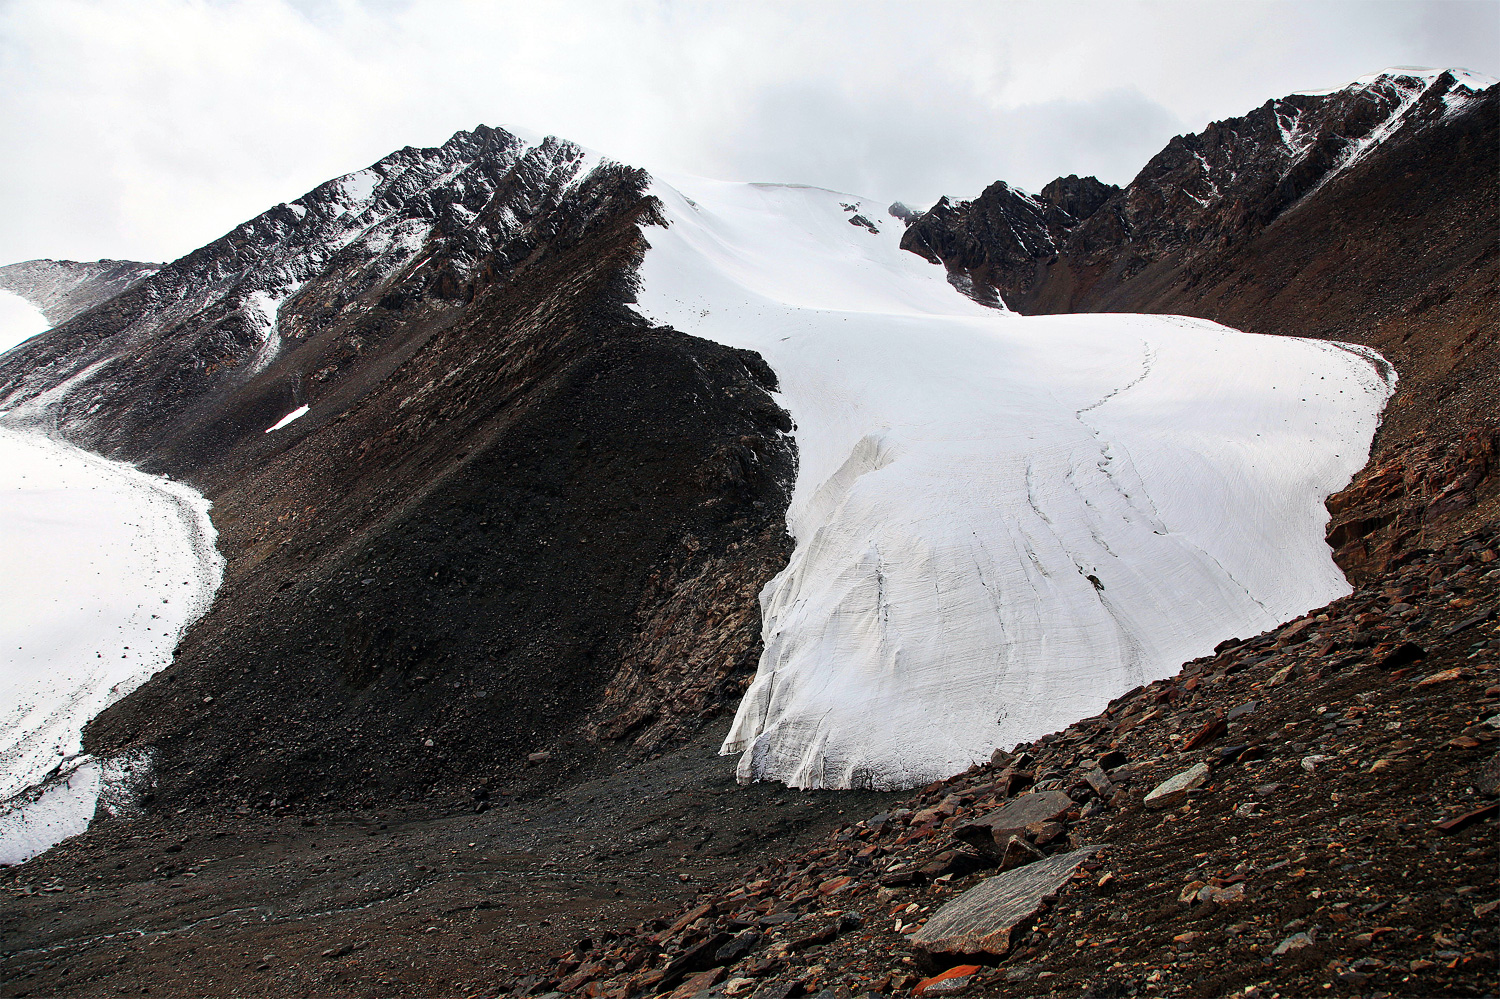 The retreating Tian Shan No. 1 Glacier has split in two. The glacier is a major source of water for the provincial capital of Urumqi. Photo by Yang Yong.